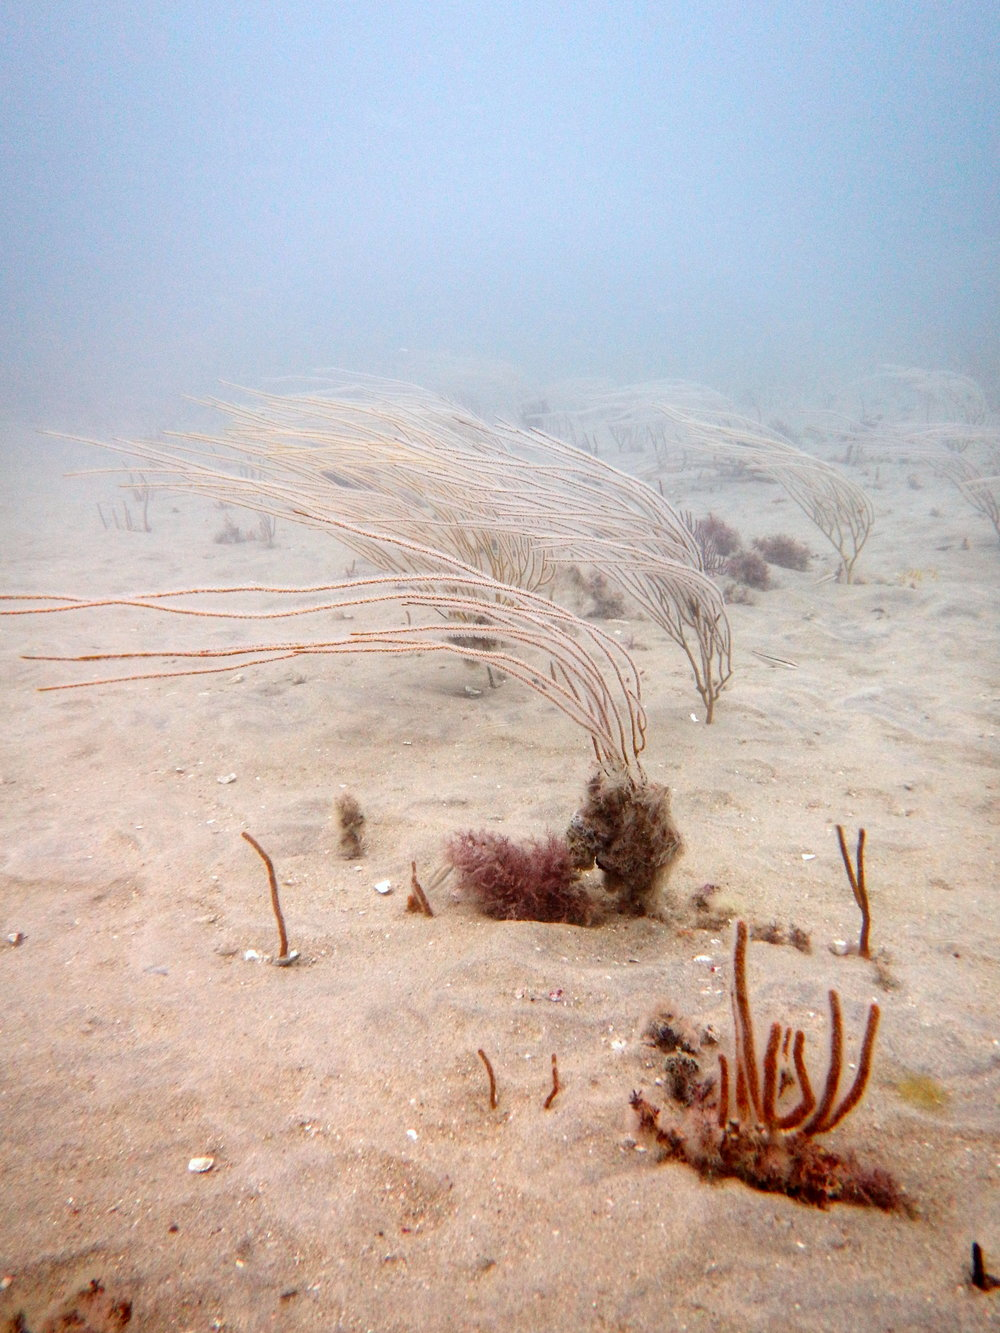 Leptogorgia virgulata , commonly called the Sea Whip, bent over in the current. Credit: Alicia Reigel.